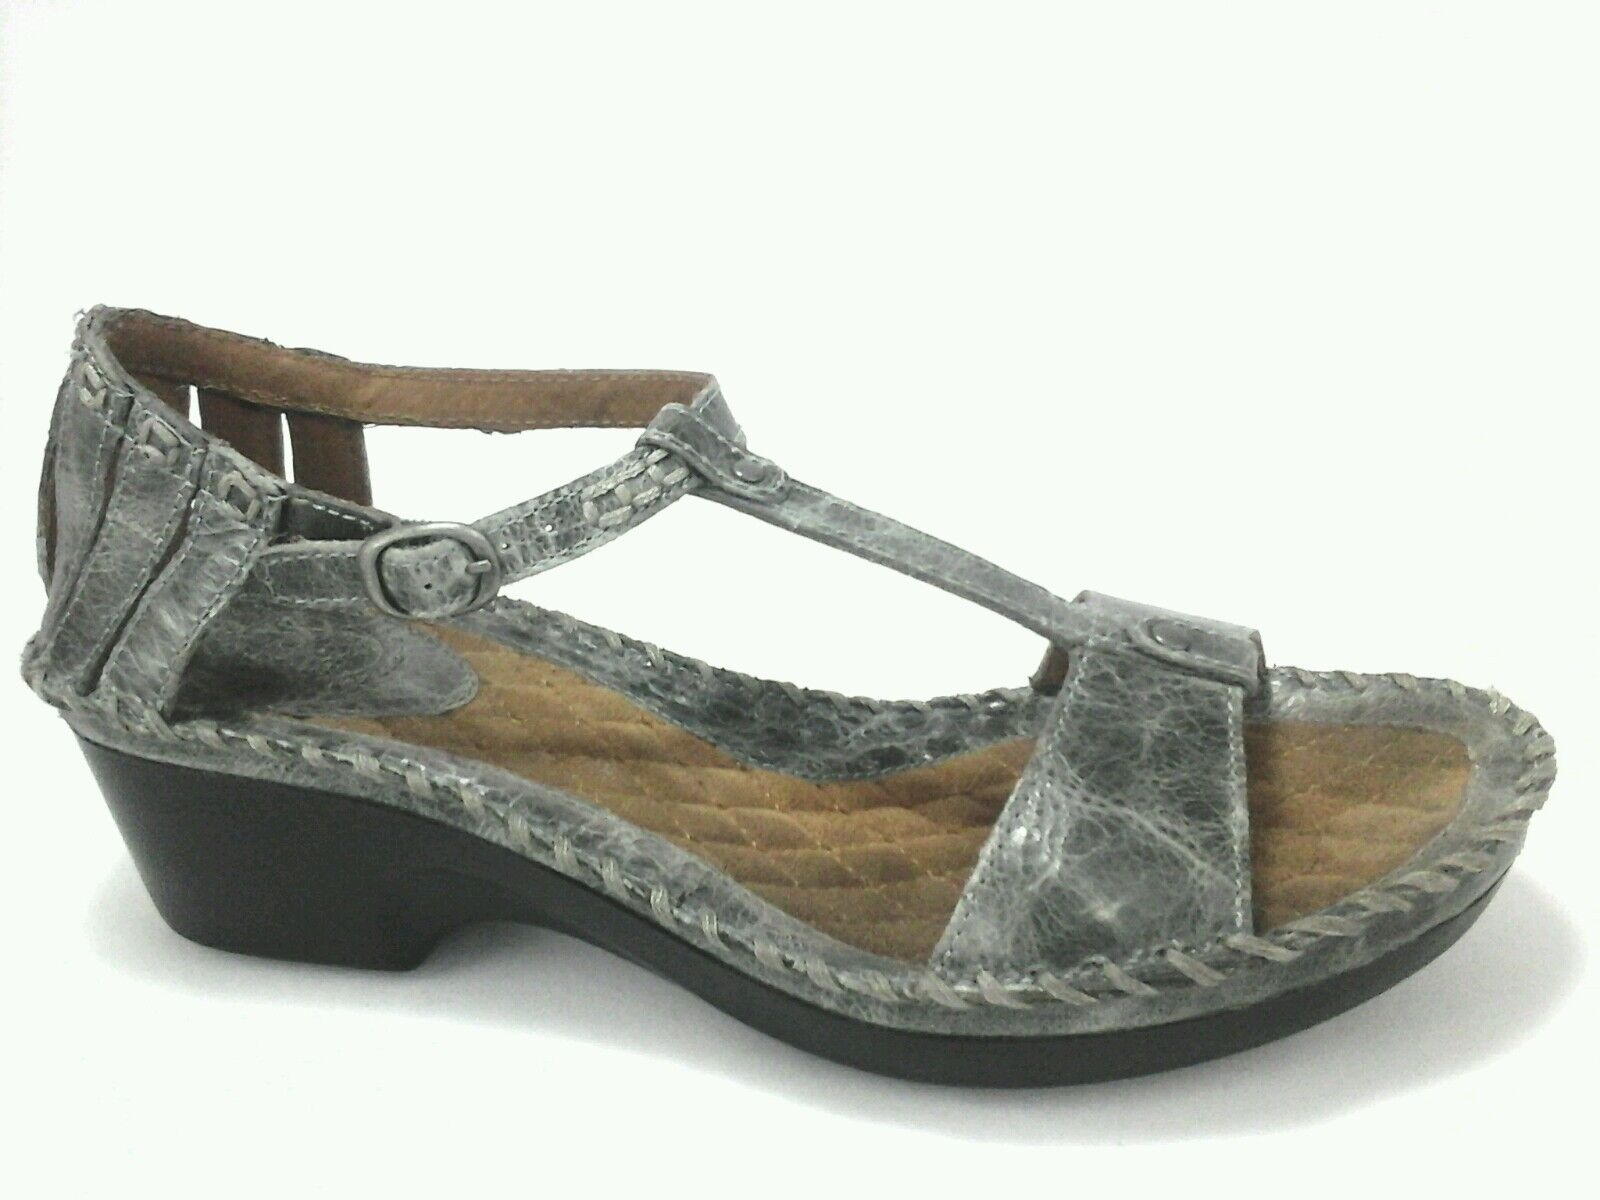 ARIAT strappy sandals green leather t- strap Donna shoes US 11 M  EUR 42.5  95